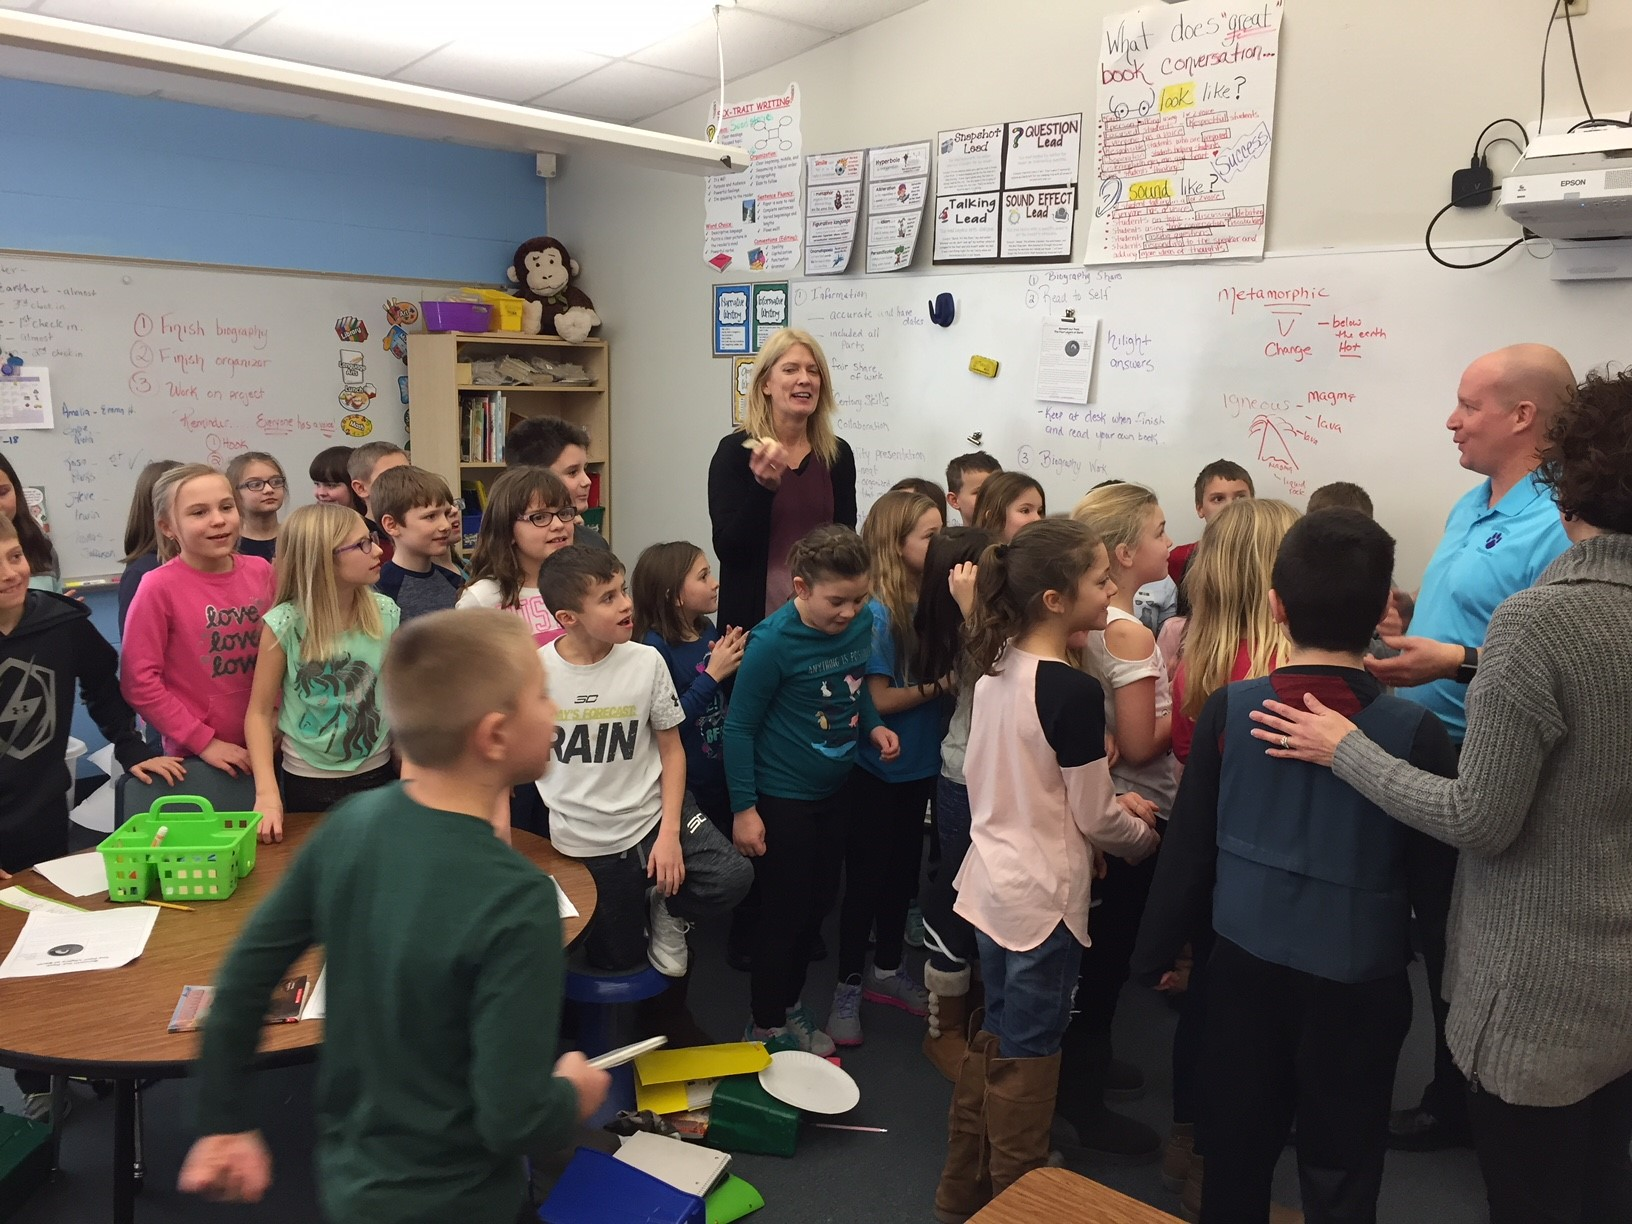 April White speaks to her third grade class at Suamico Elementary School Feb. 7, 2018, after being announced as a Golden Apple Award recipient. (WLUK/Donna Fischer)